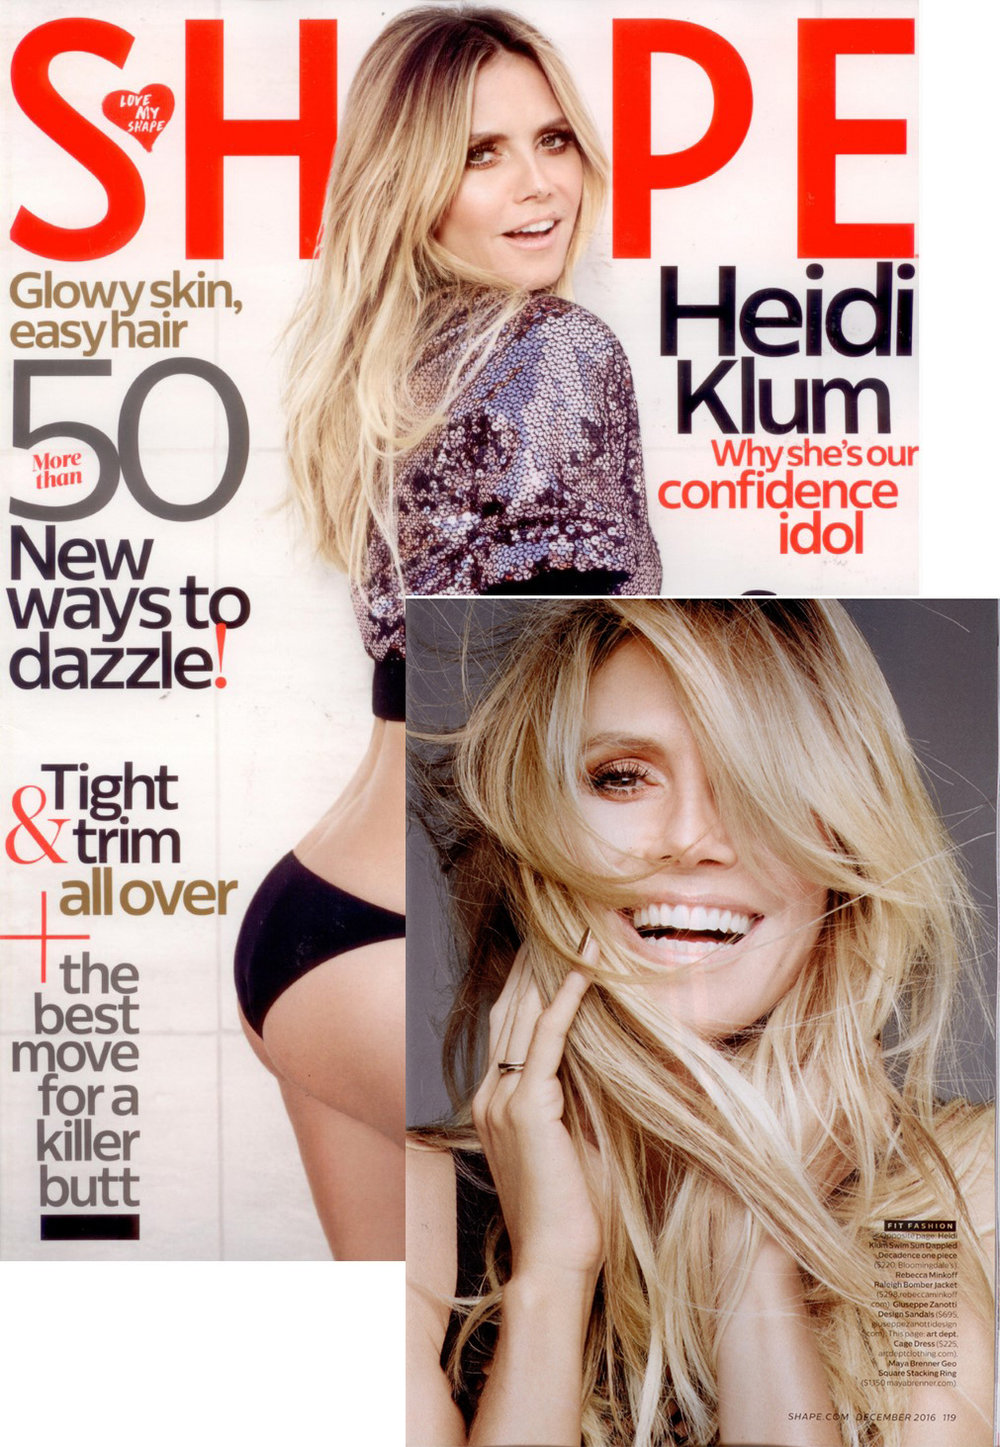 Heidi Klum on the Cover of Shape Magazine